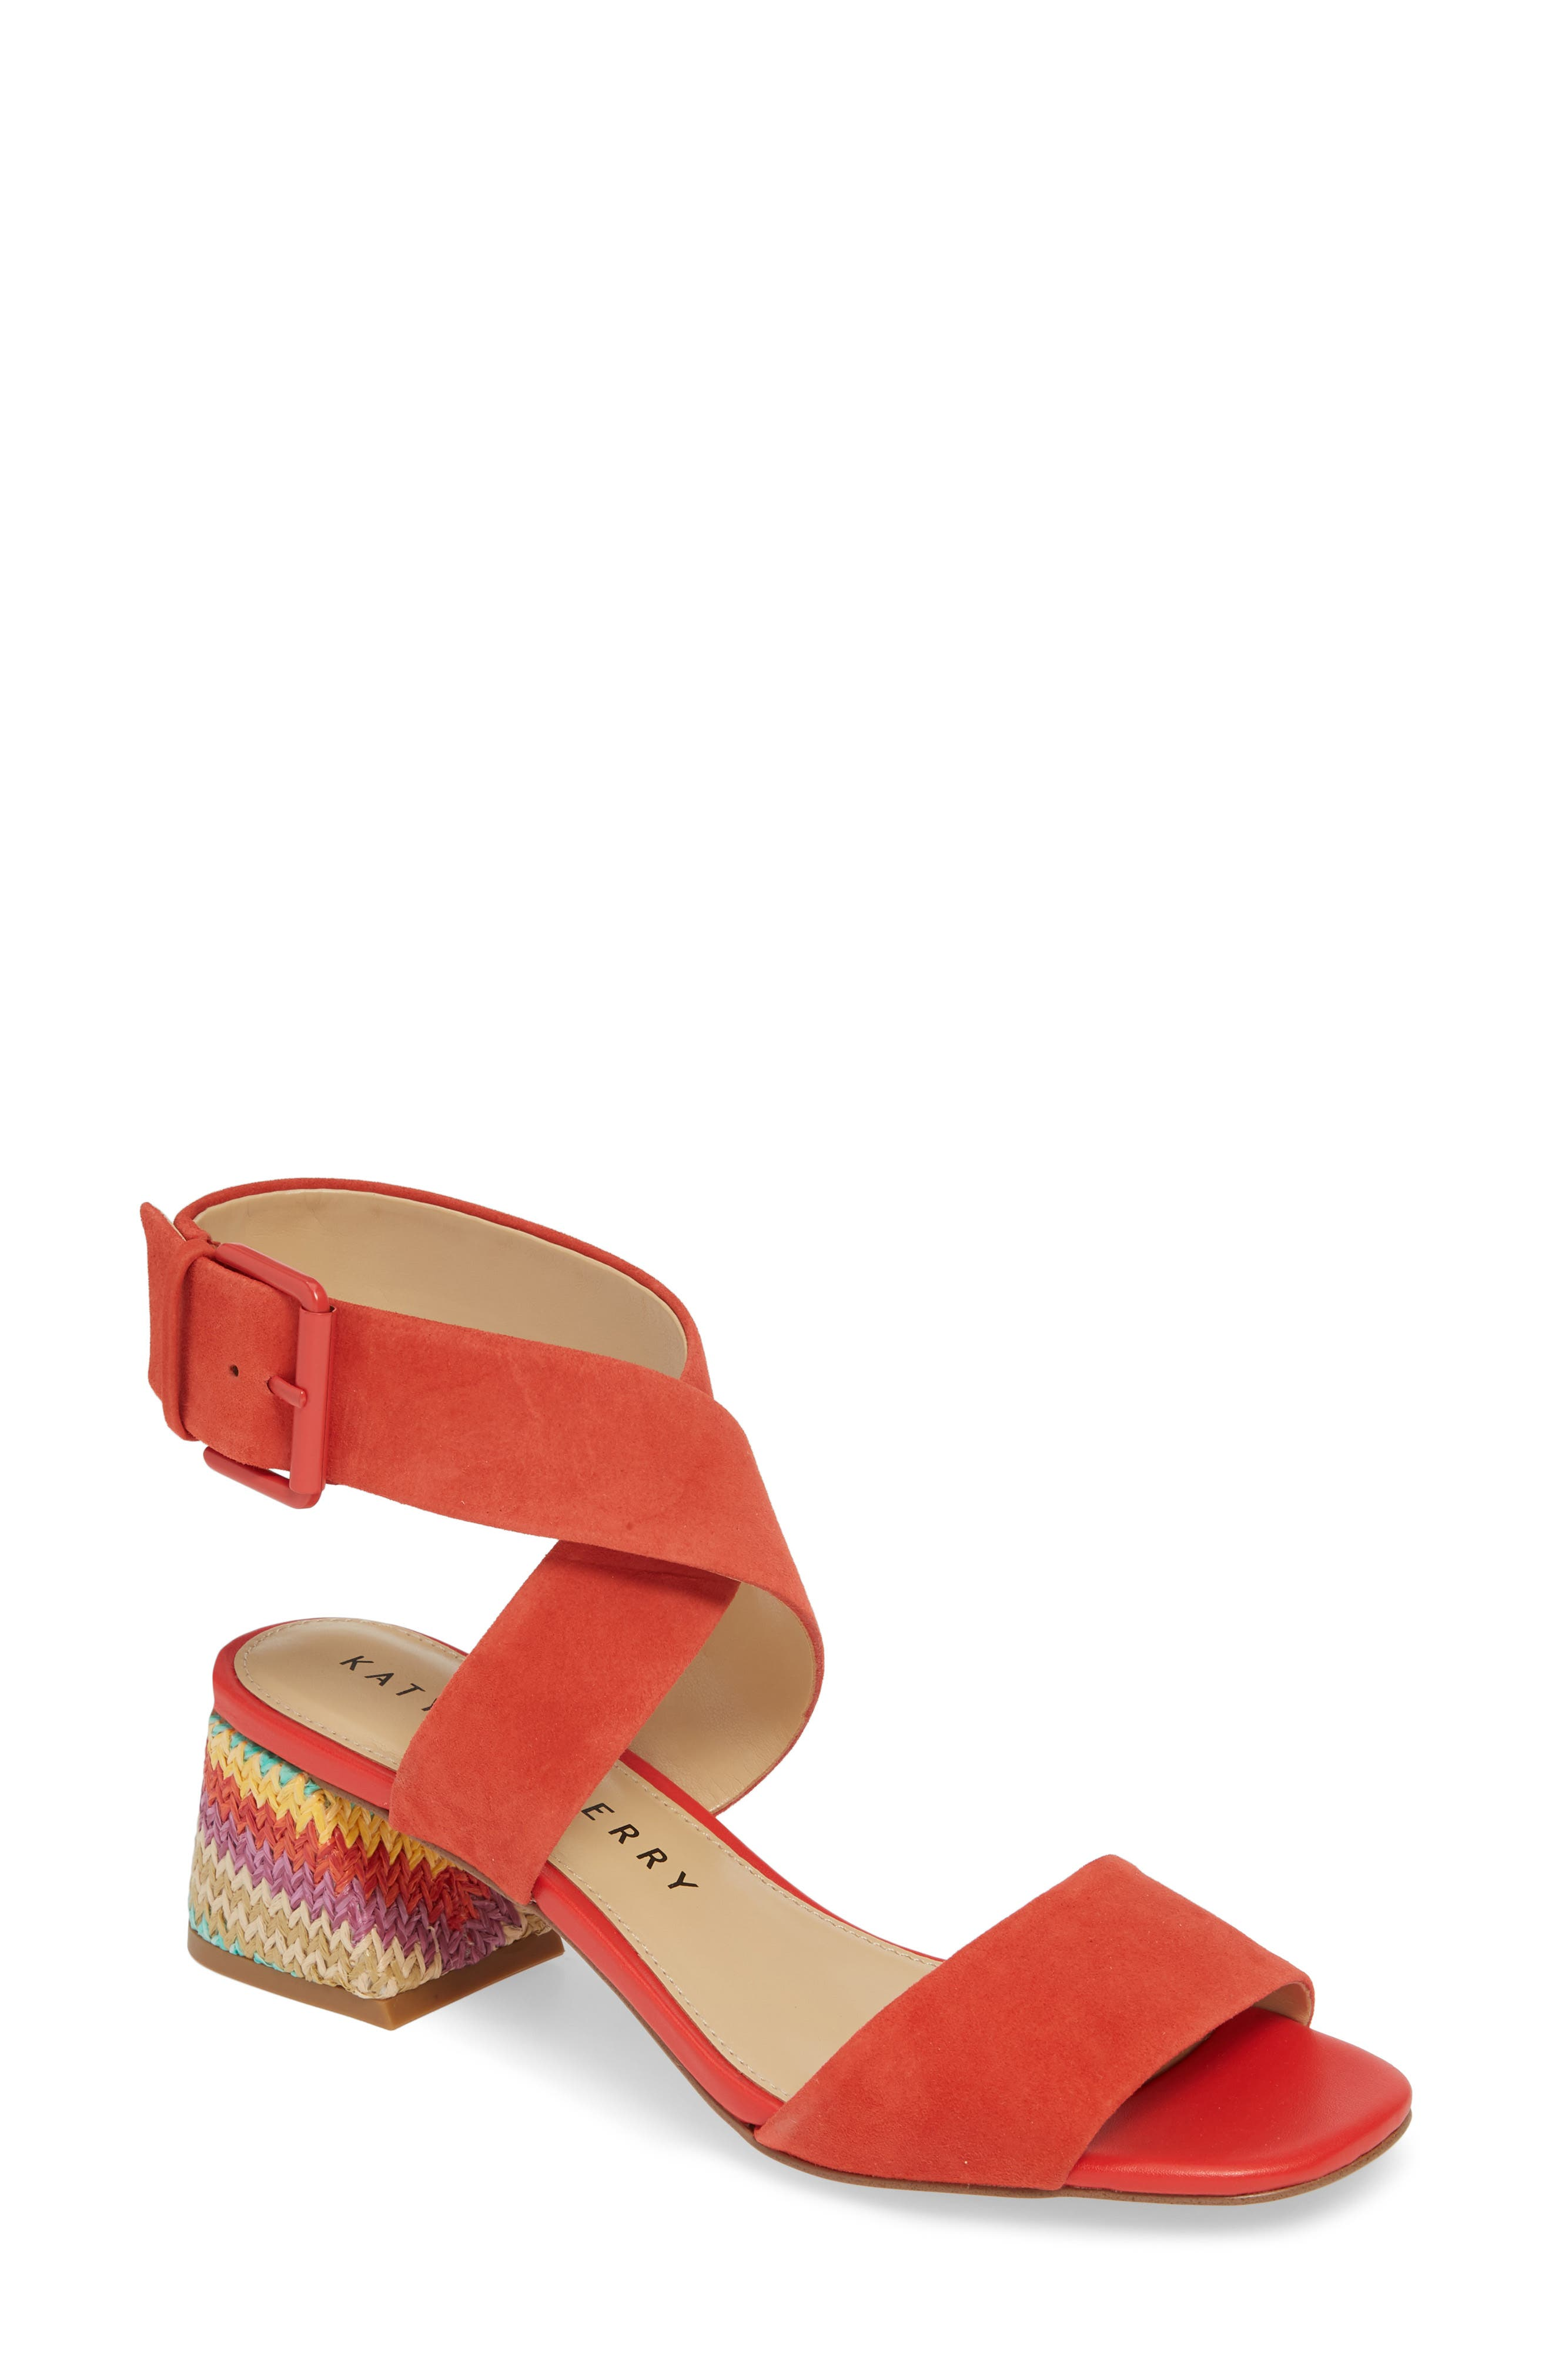 Katy Perry Albee Sandal, Red